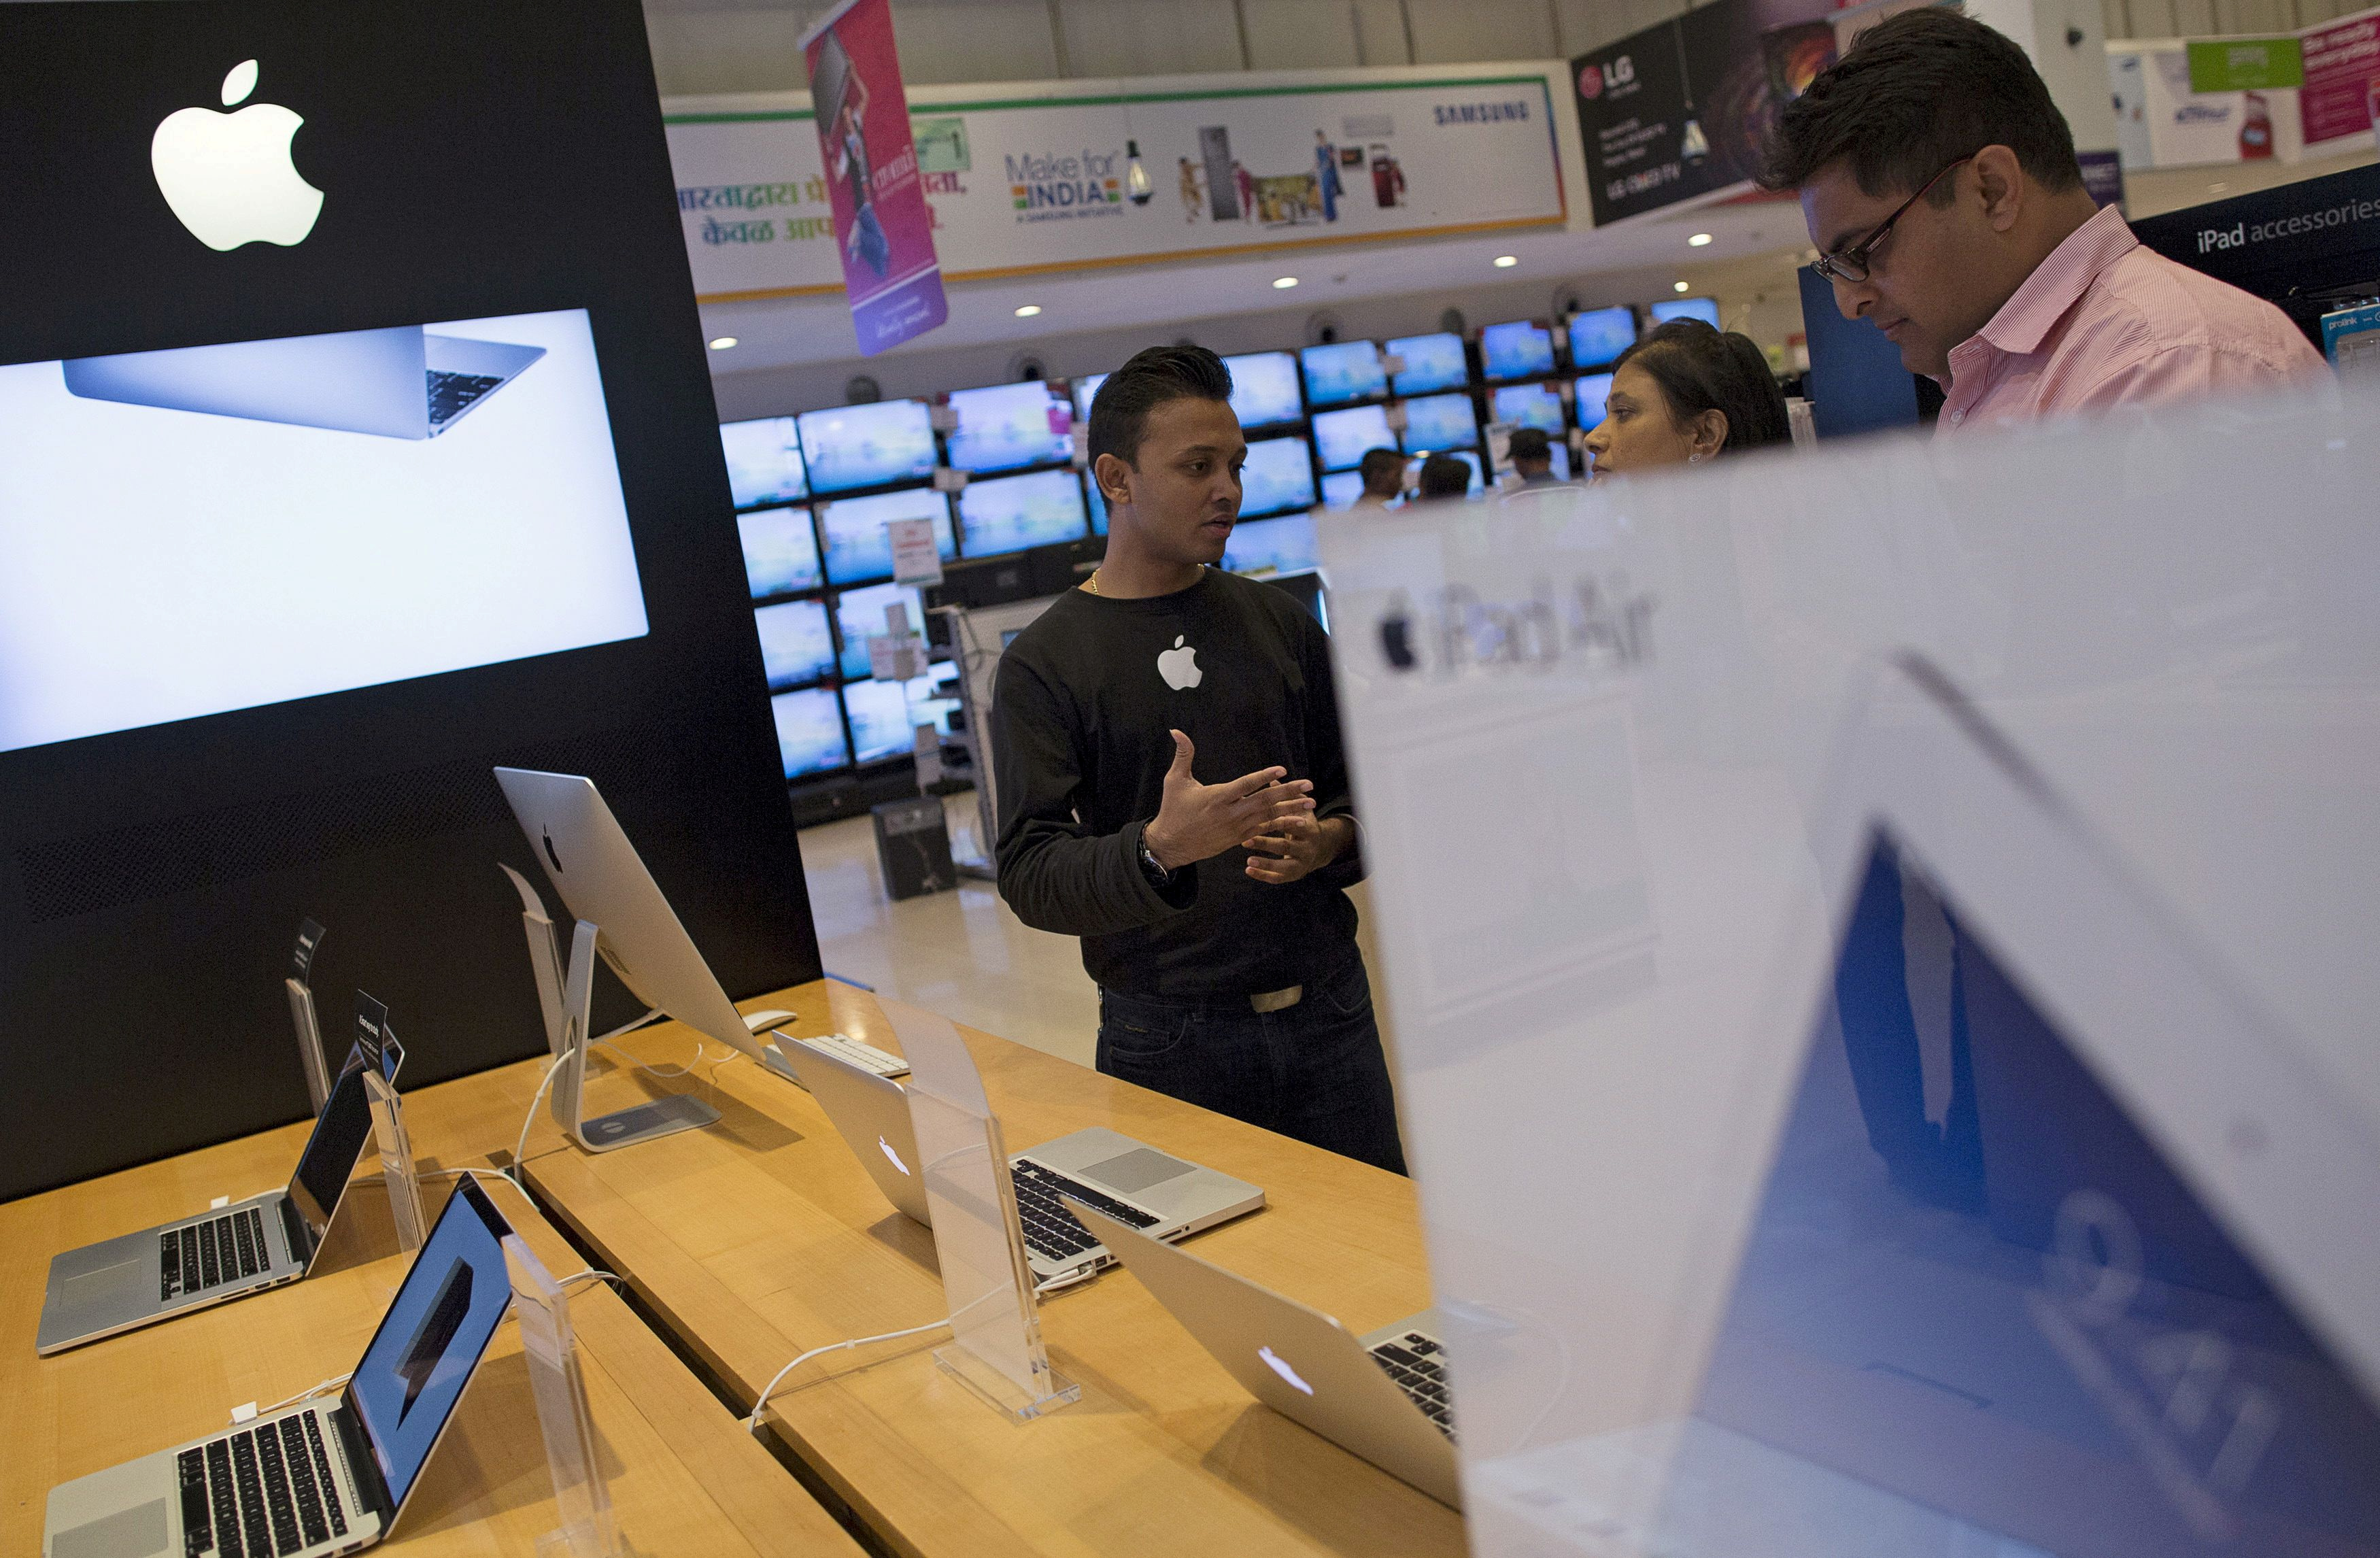 An Apple salesperson speaks to customers at an electronics store in Mumbai, India, July 23, 2015. REUTERS/Danish Siddiqui/File Photo